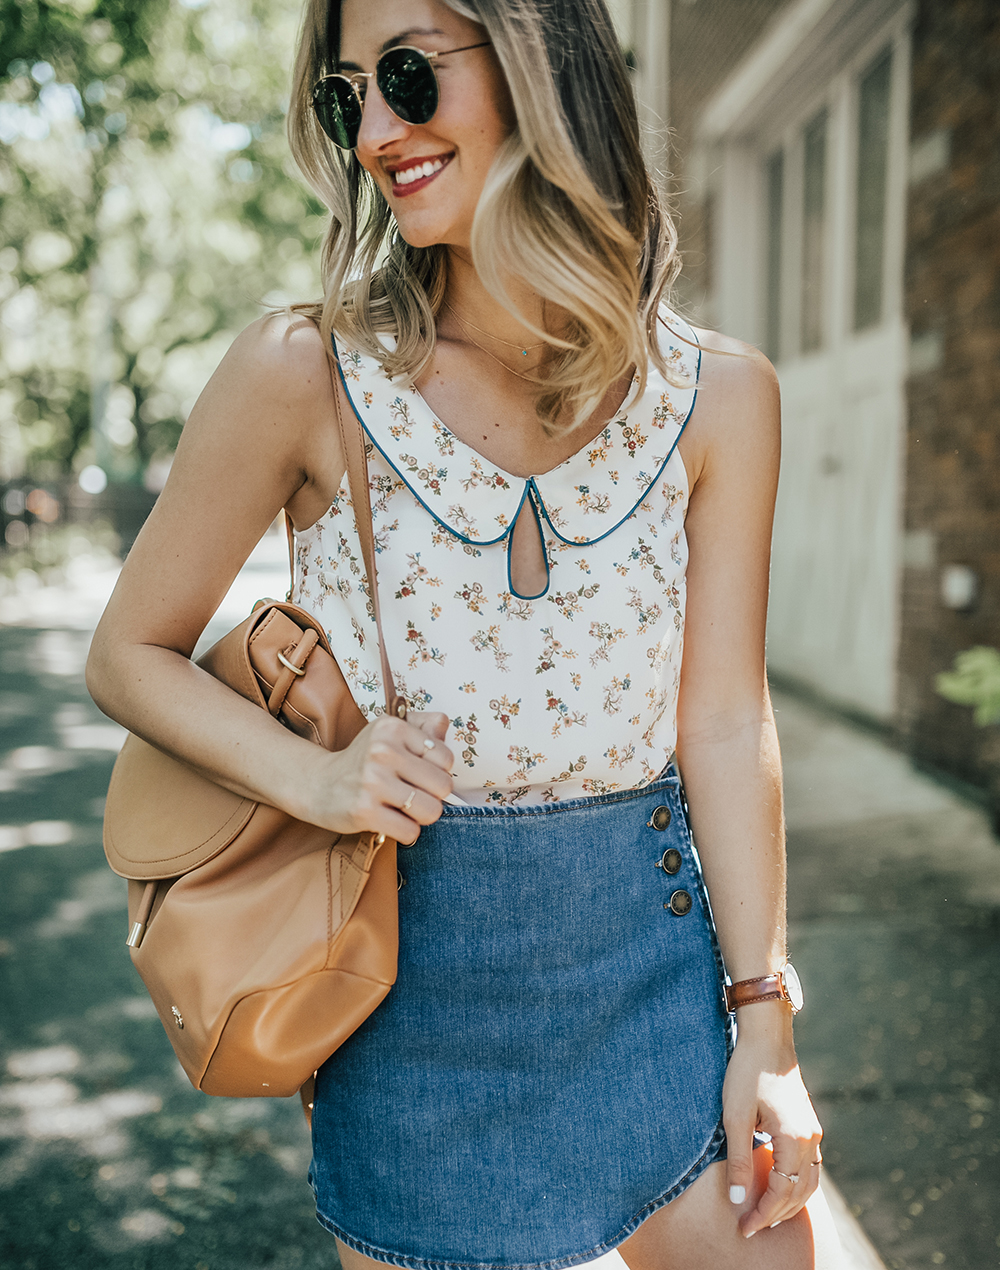 livvyland-blog-olivia-watson-new-york-city-cobble-hill-brooklyn-modcloth-skort-peter-pan-collar-top-vans-classic-sneakers-summer-outfit-9